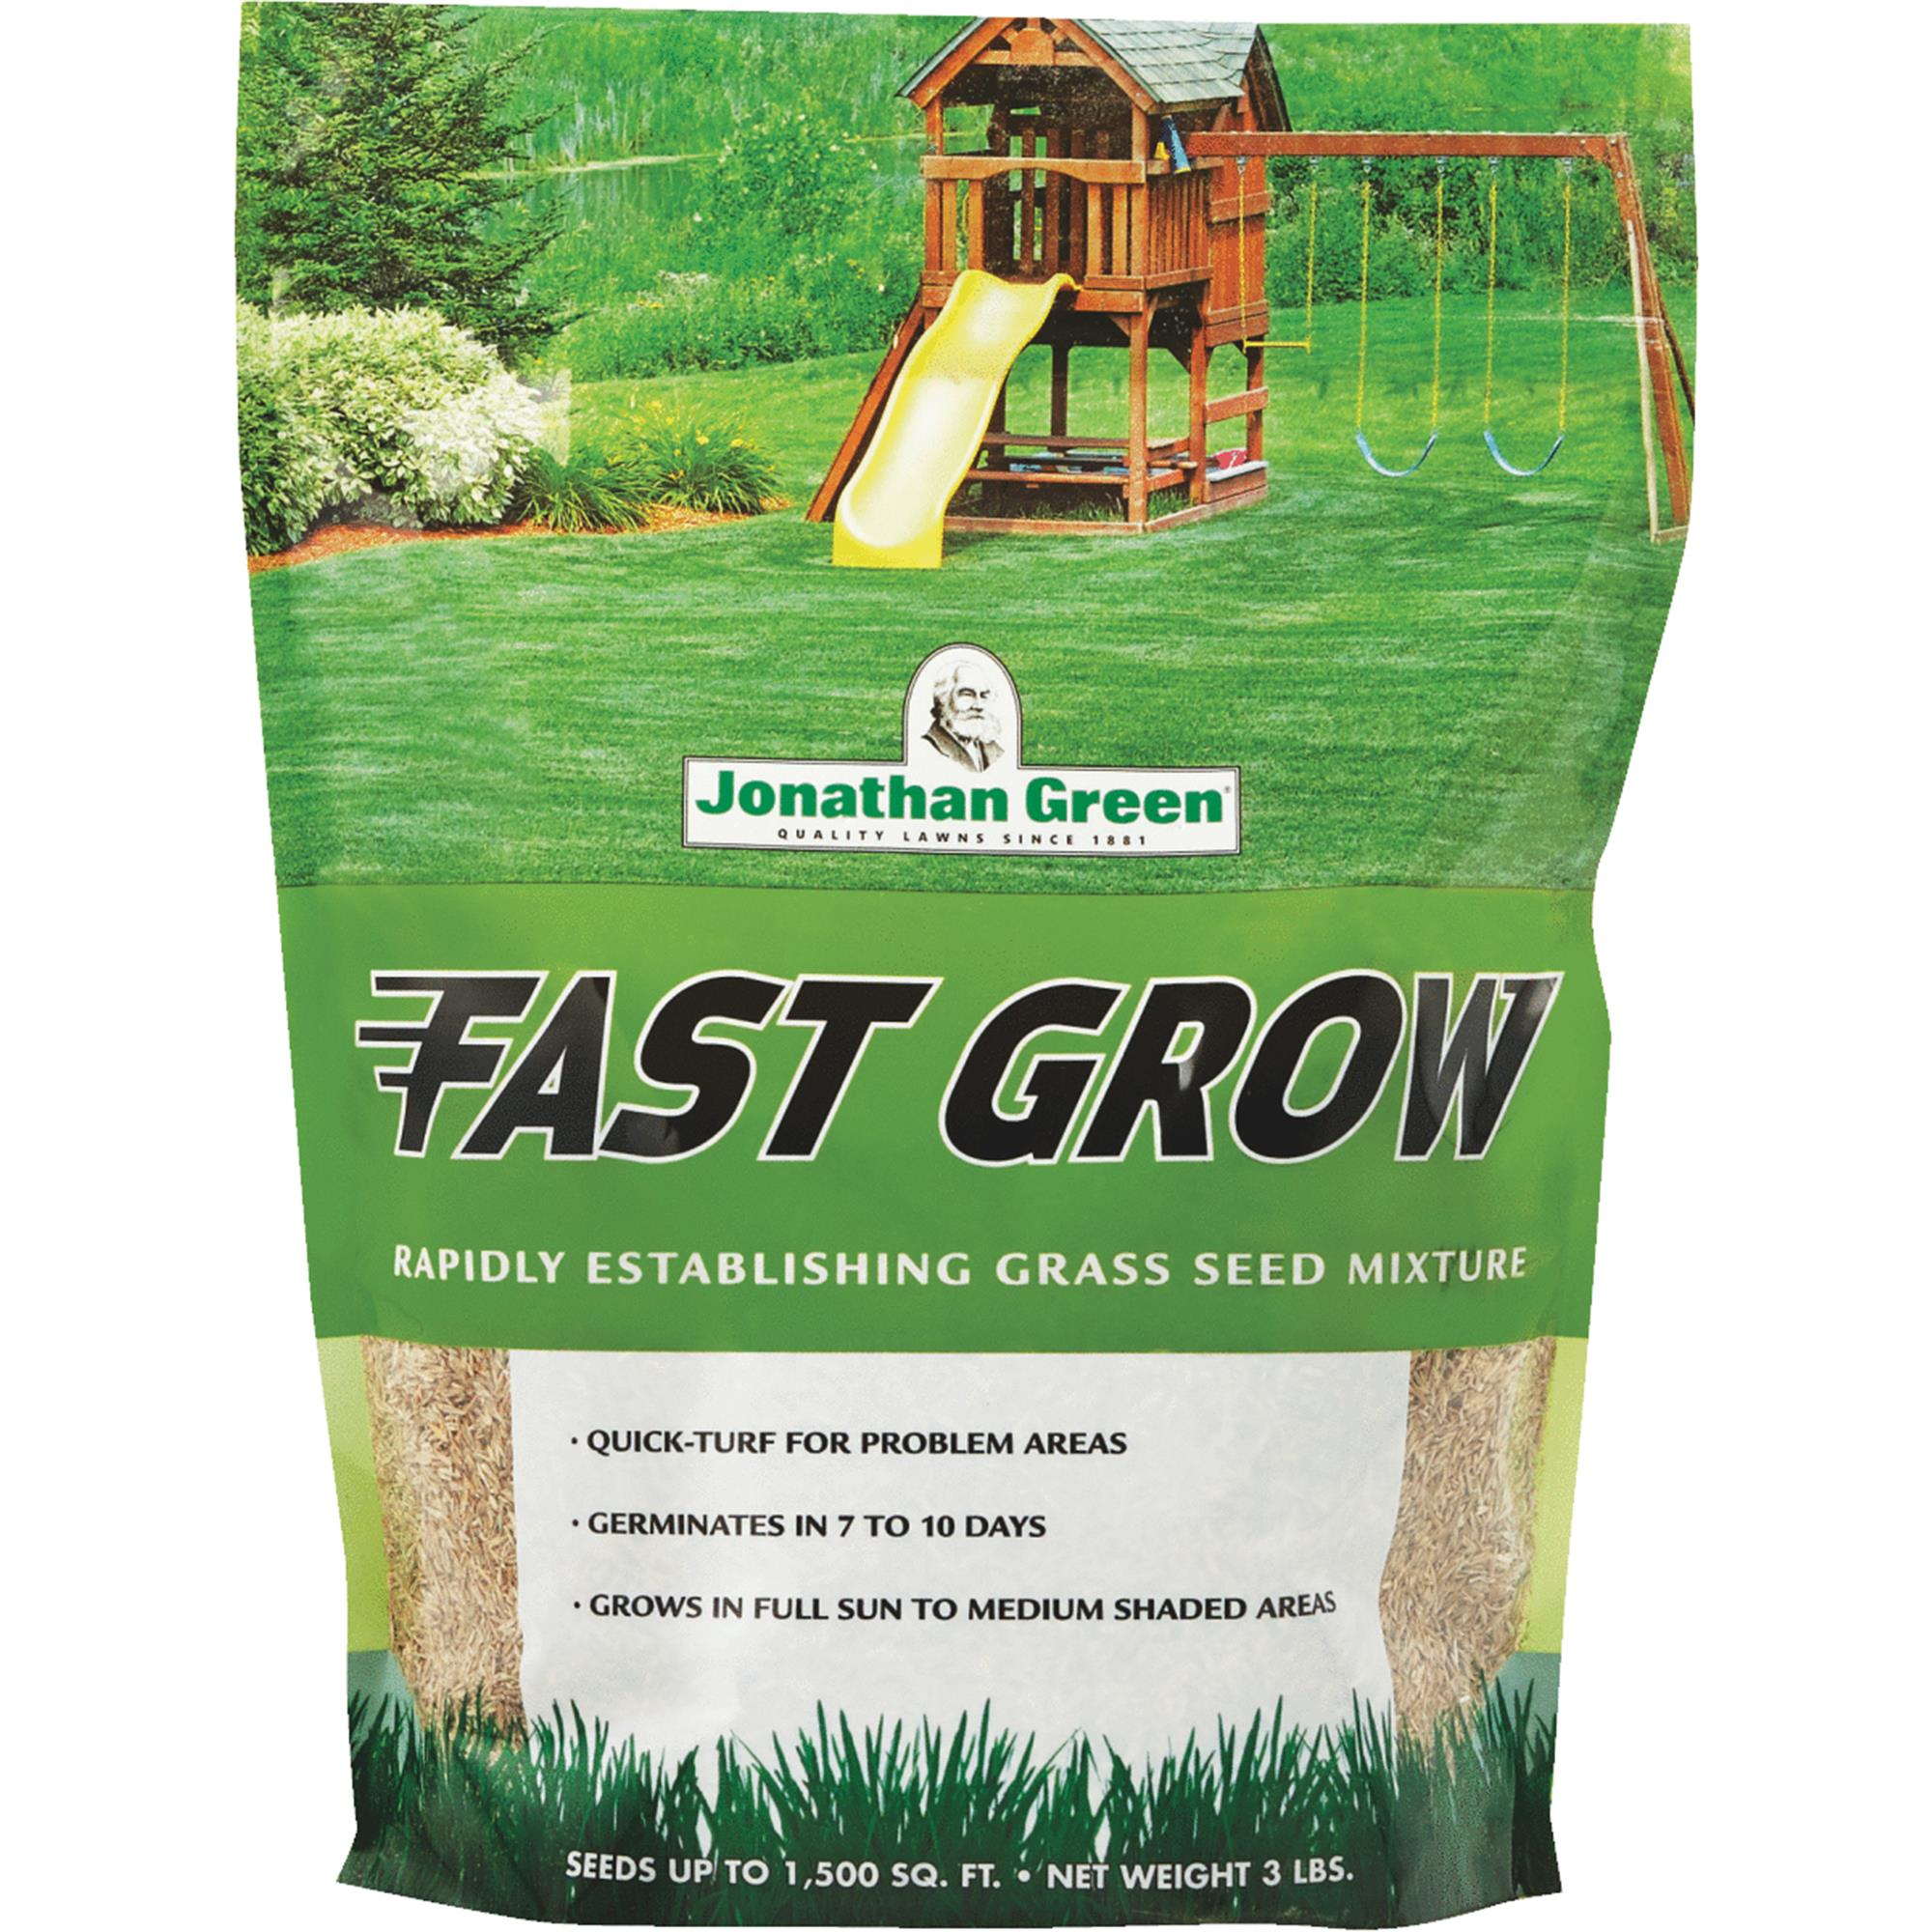 Jonathan Green Fast Grow Grass Seed Mixture